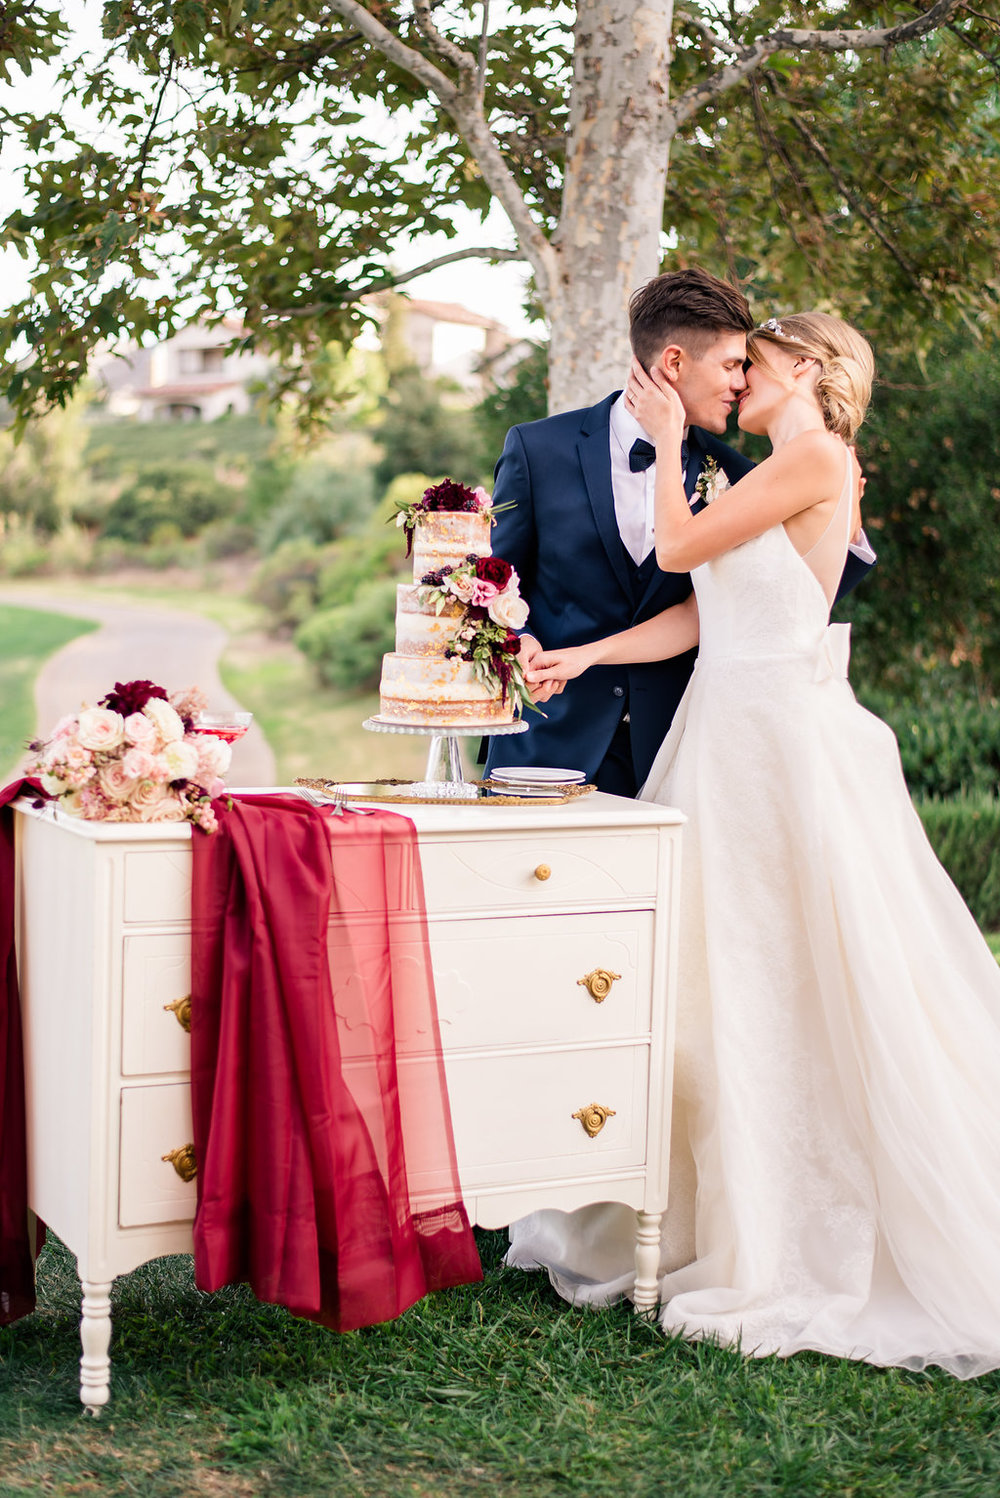 Featured on Strictly Weddings & The Coordinated Bride | Photo by Melissa Brannon